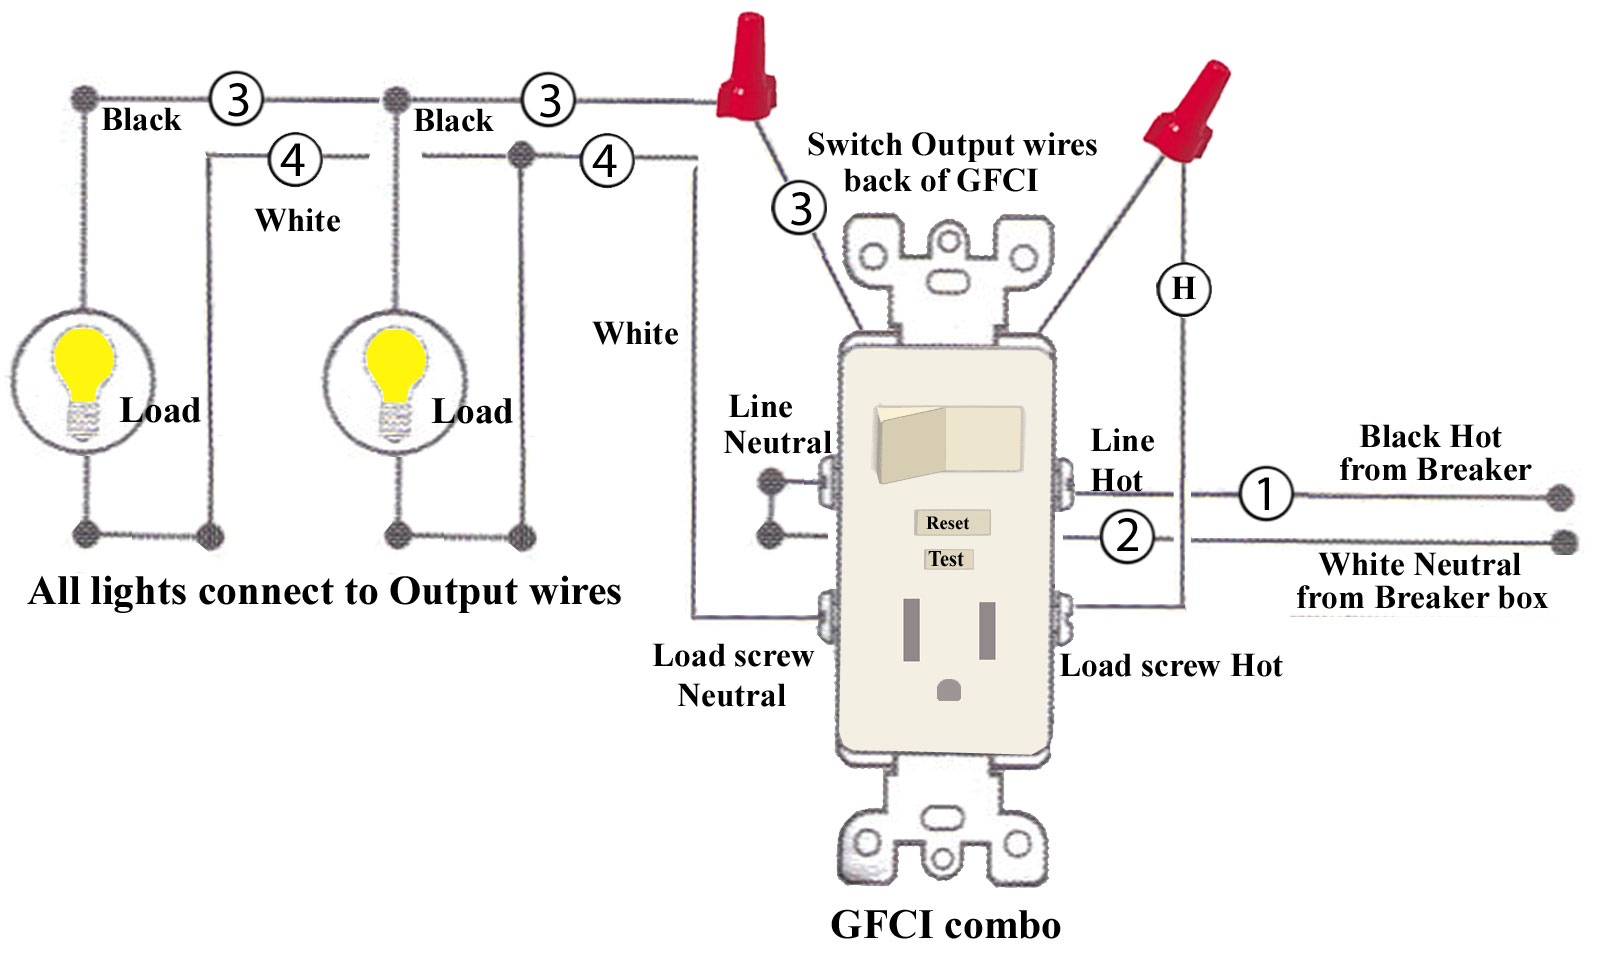 How To Install And Troubleshoot Gfci Basic Wiring Diagram Pdf Also Bathroom Fan Light Larger Image Step 7 If There Are More Wires In The Box